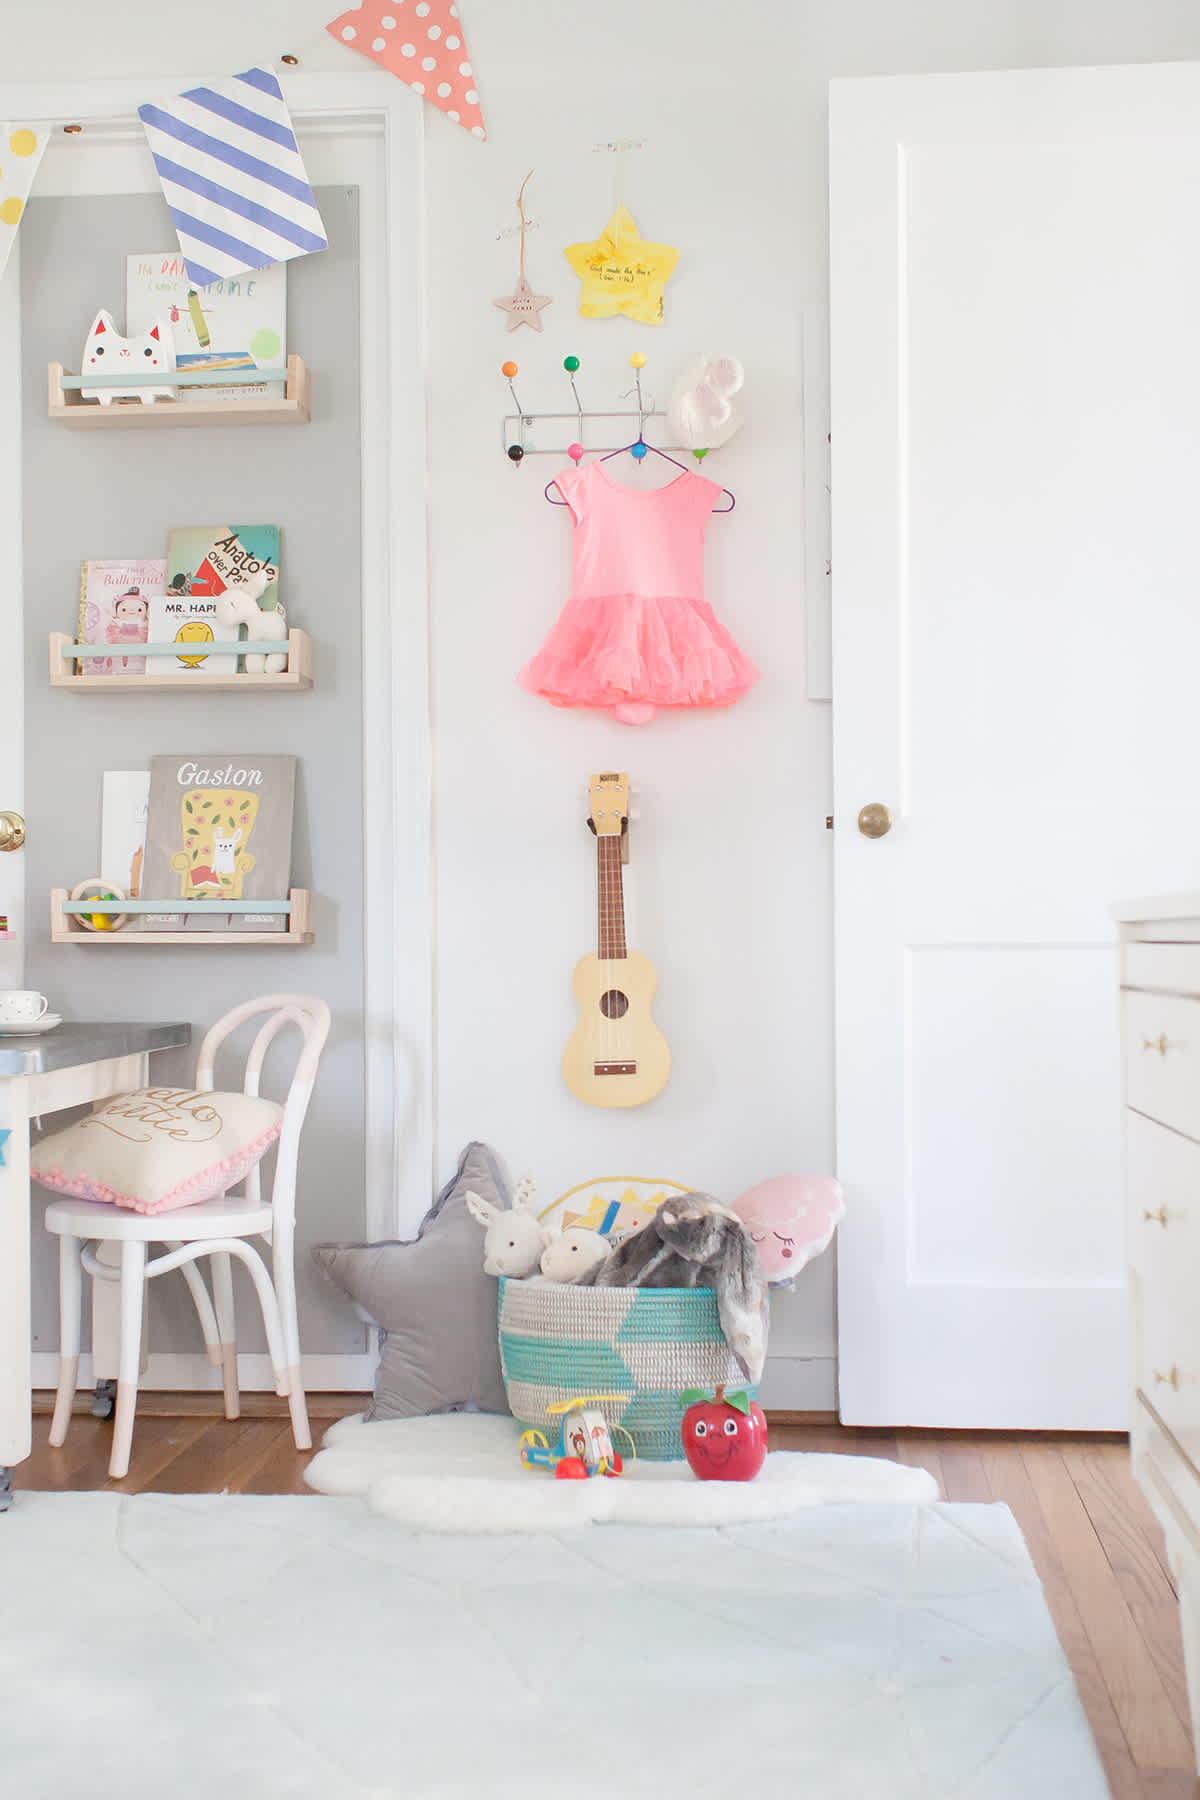 ikea-spice-rack-shelves-ideas-nursery-kids-bedroom-playroom-dyi-hack